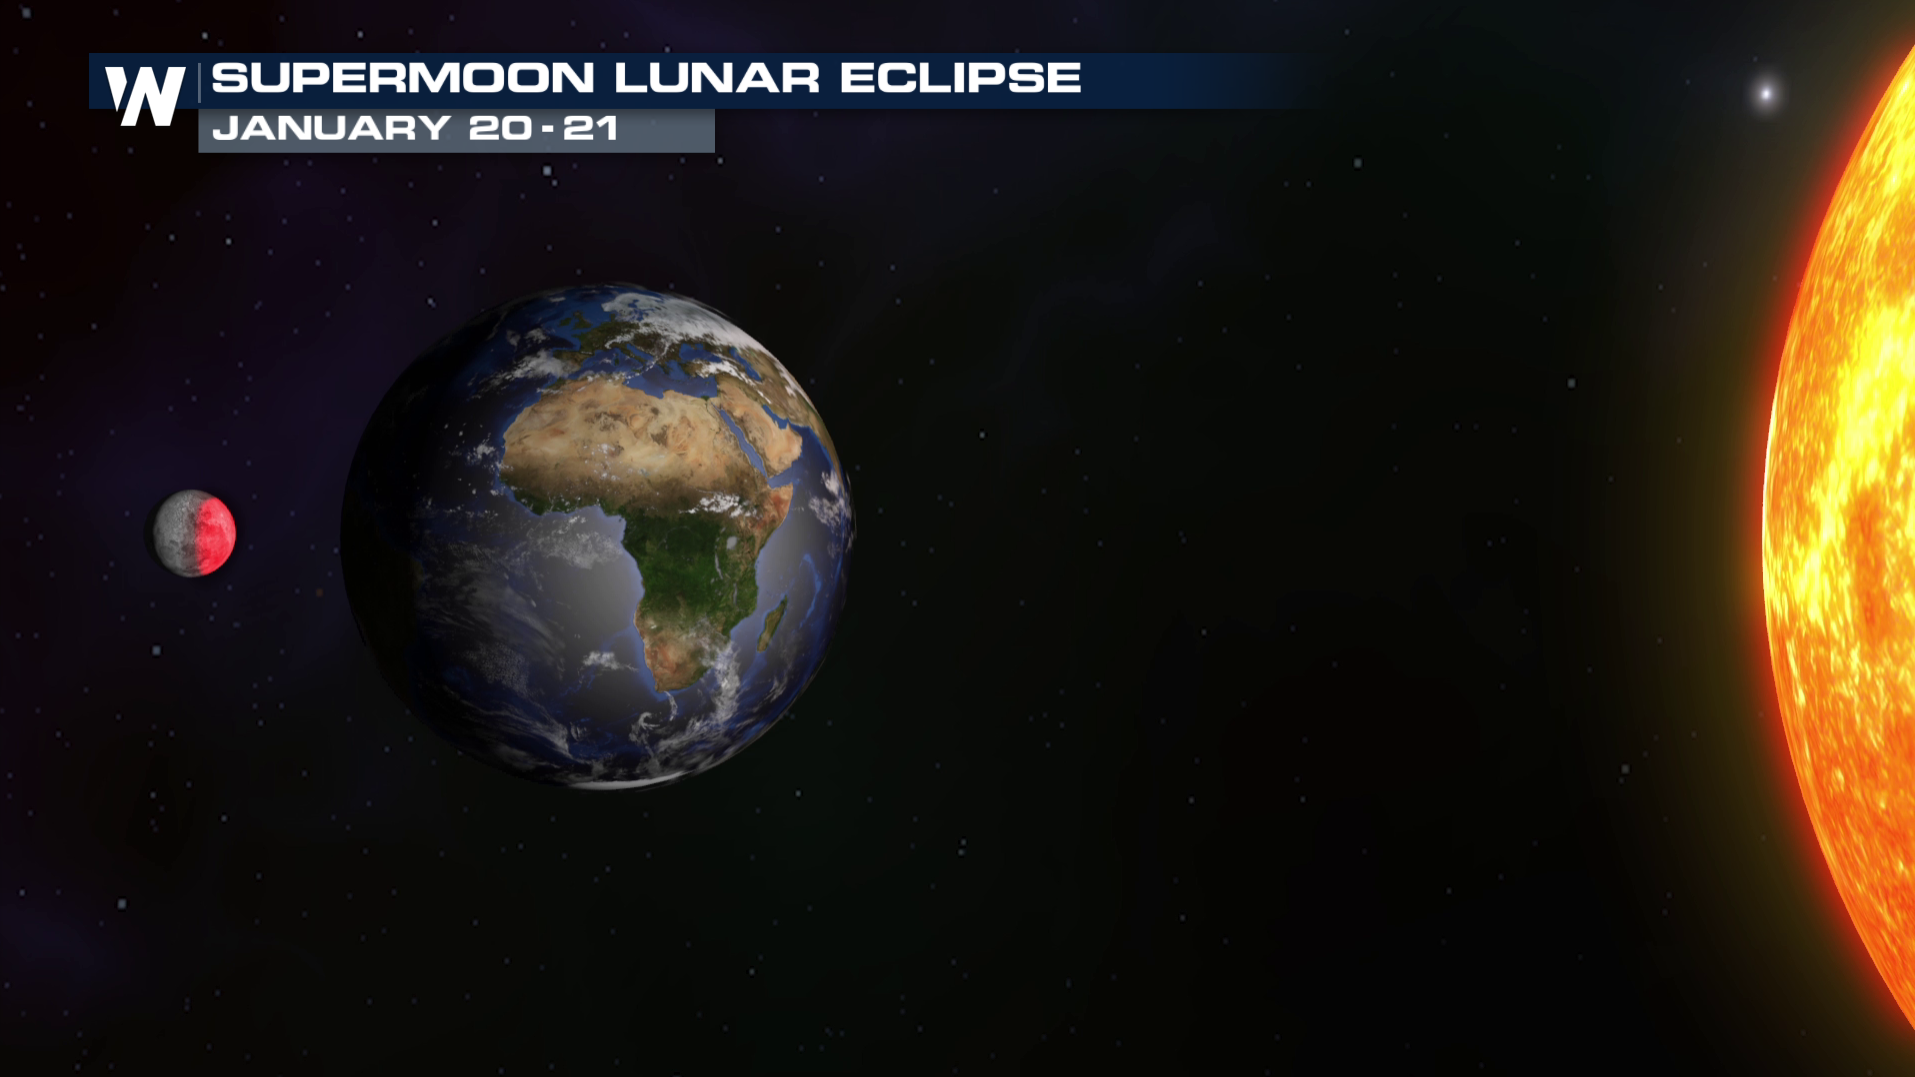 Don't Miss the Supermoon Lunar Eclipse